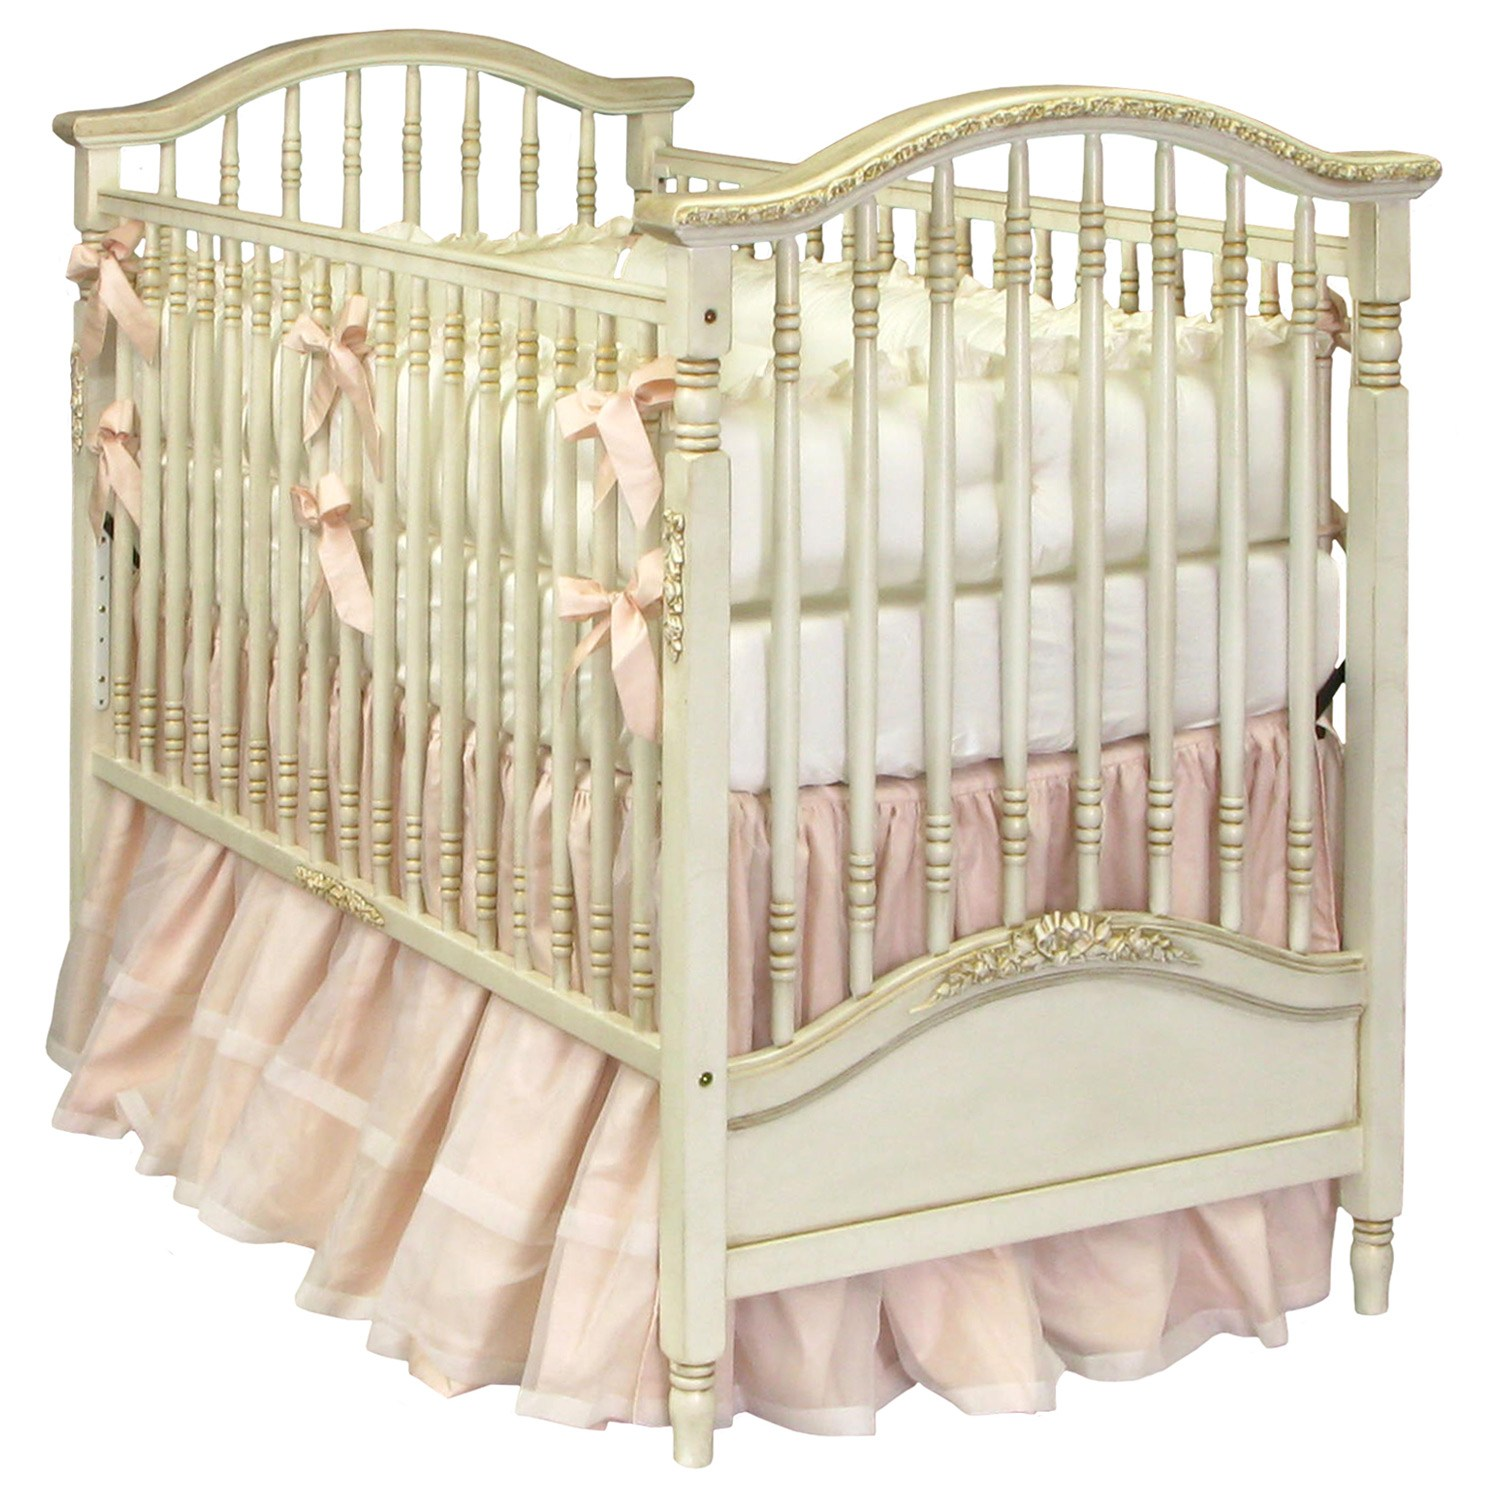 Cuddles Kids Bedding Boutique Blog The Beauty of a Classic